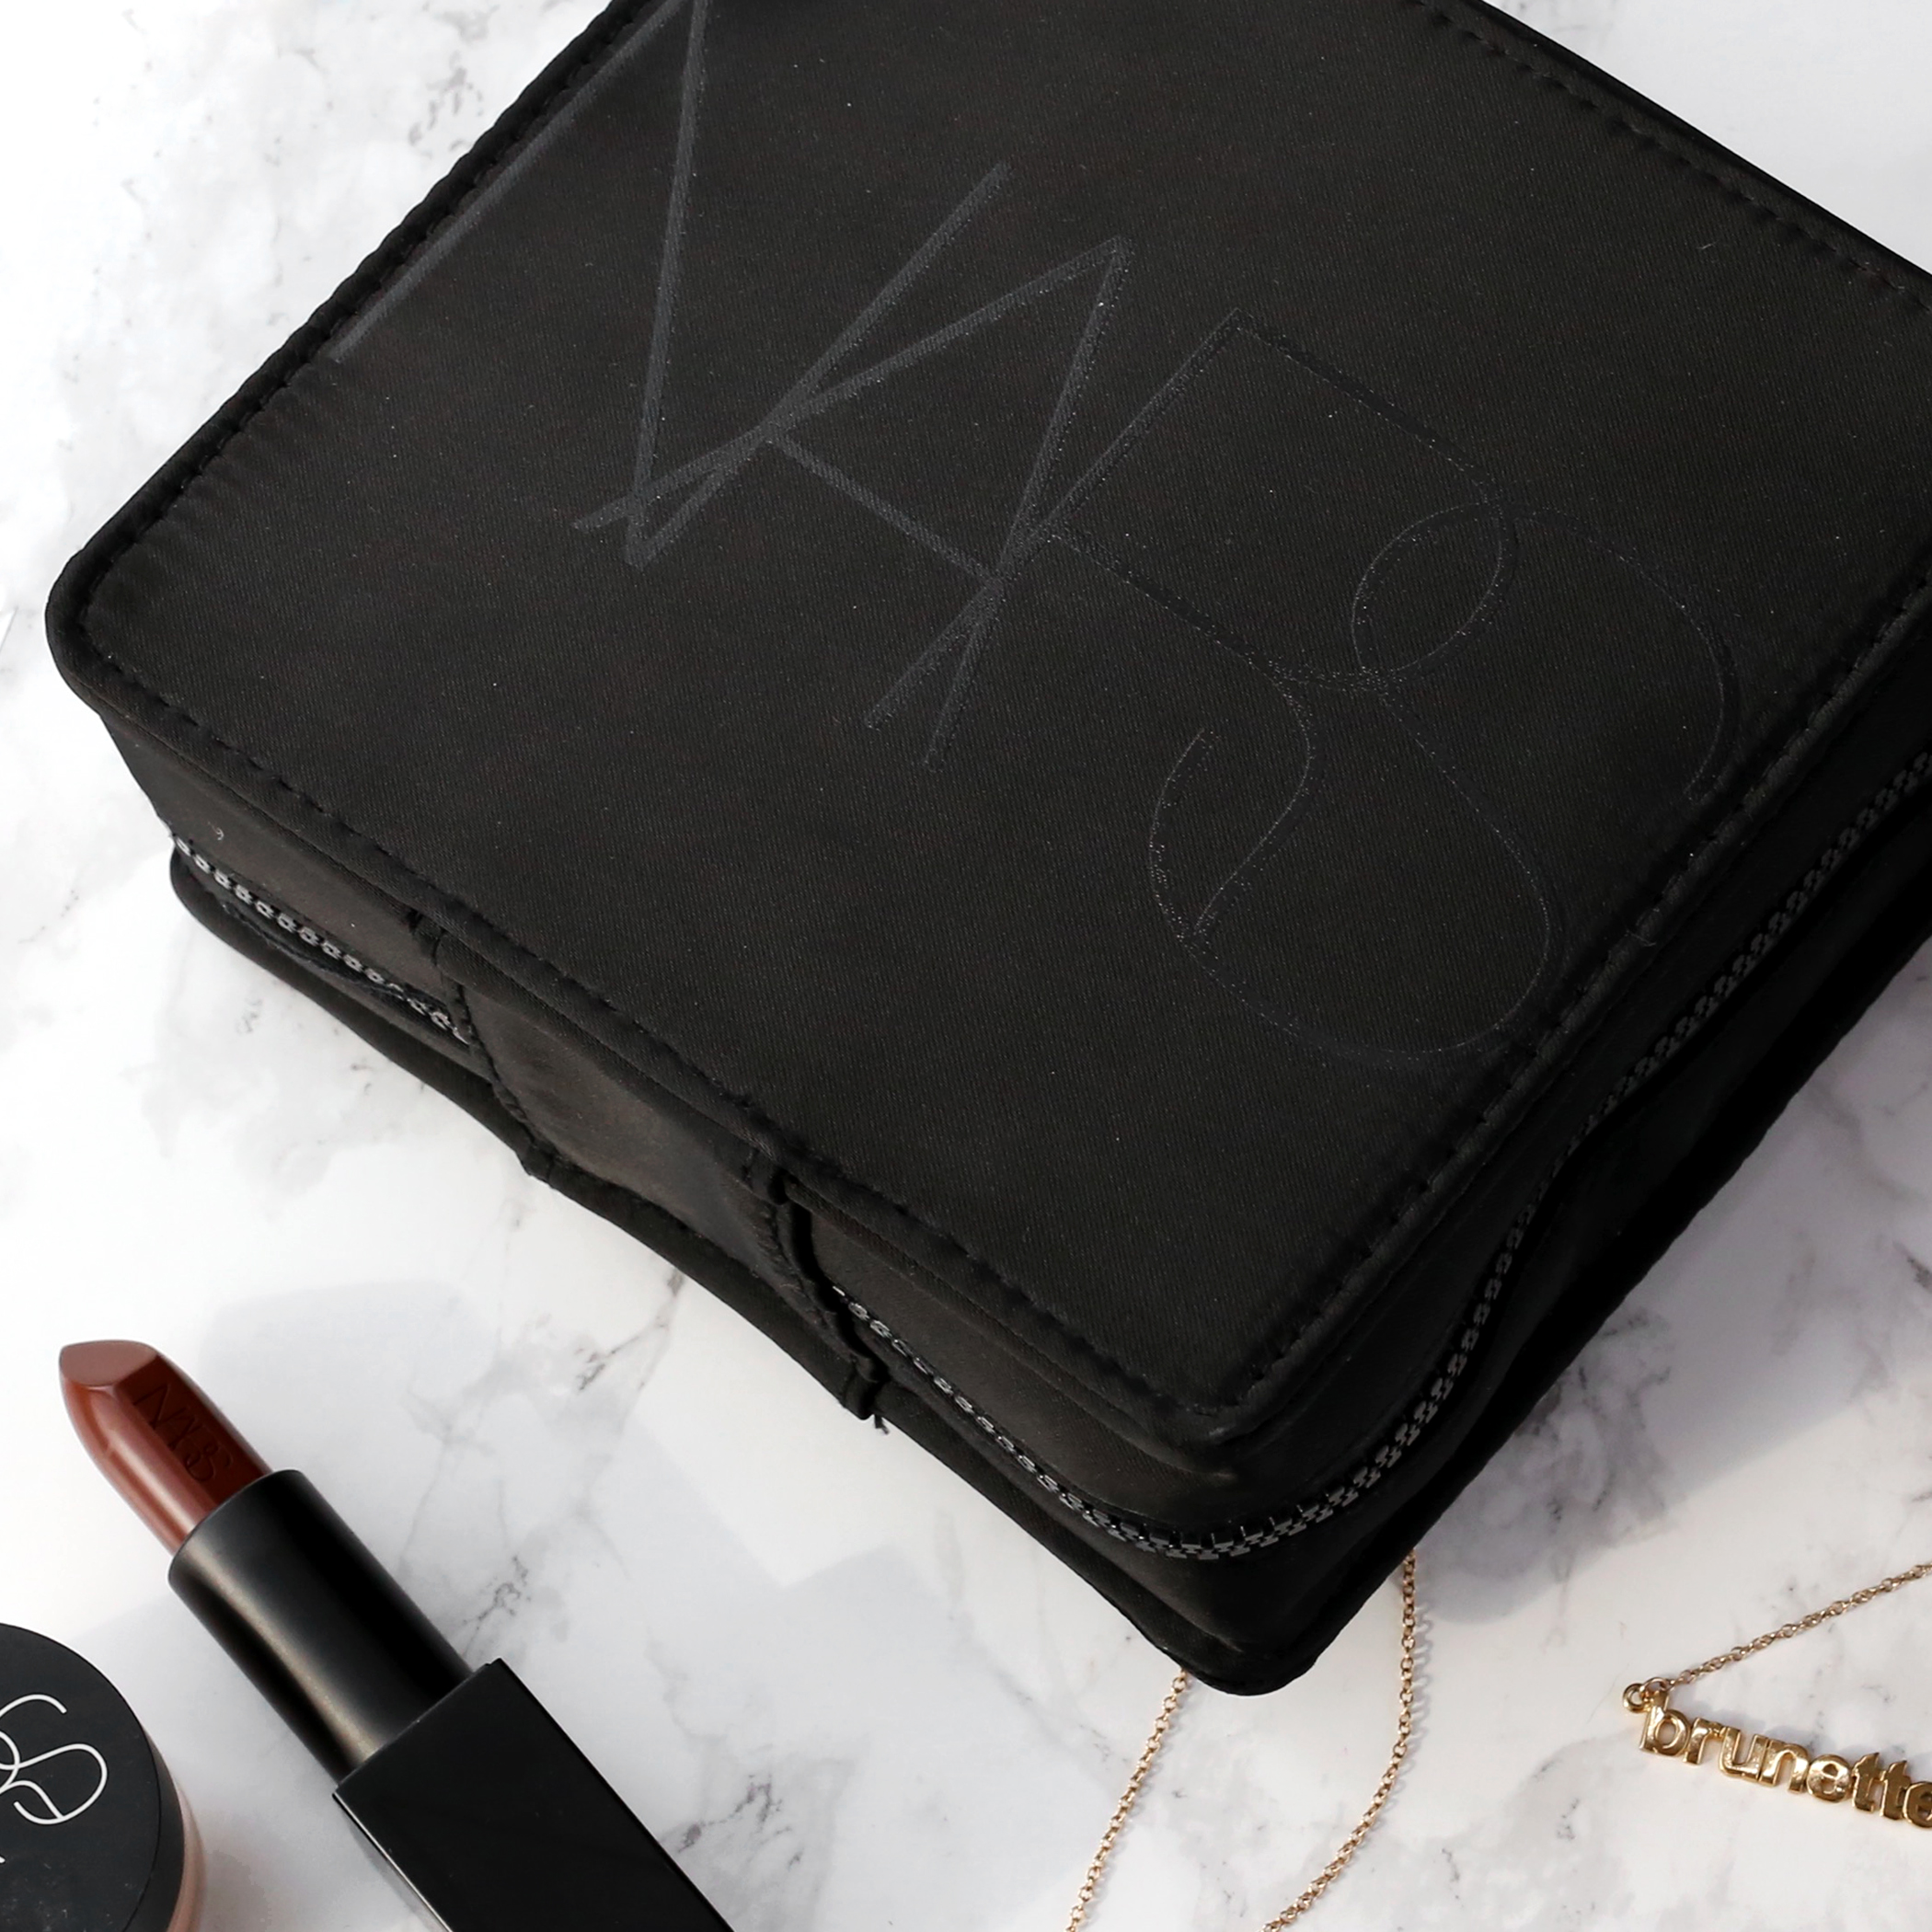 NARS Danger Control Eyeshadow Palette - review and swatches - Sephora Exclusive - woahstyle.com - toronto beauty blog - nathalie martin_7217.jpg